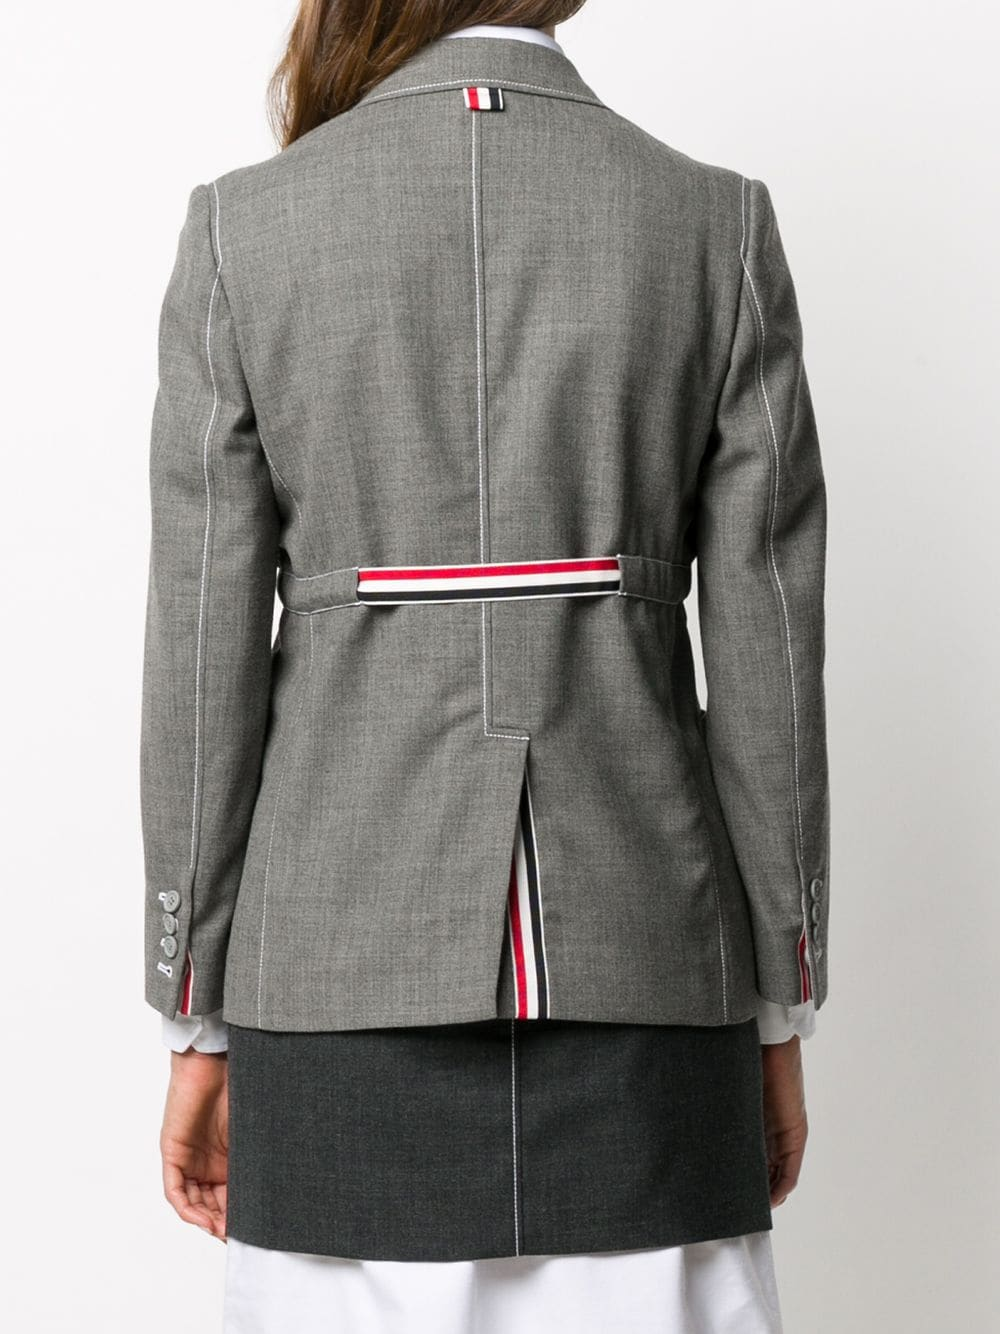 THOM BROWNE WOMEN SACK JACKET W/ RWB GG BELT - FIT 2 - IN 2PLY FRESCO